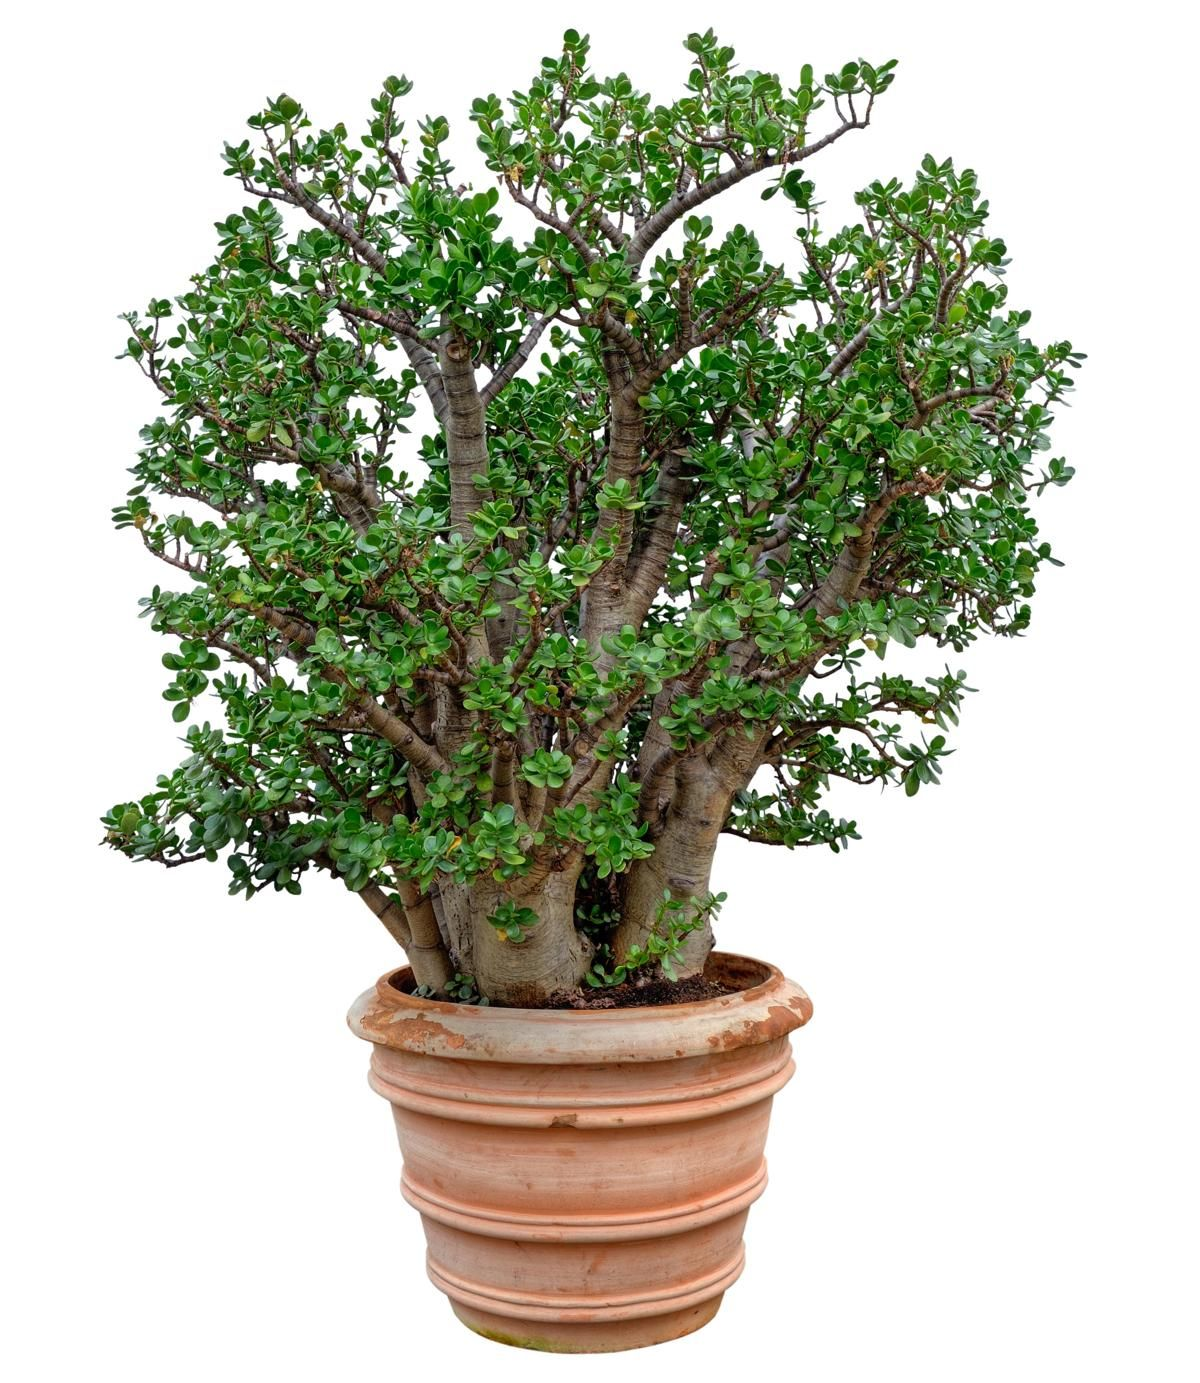 With Small Potted Plants Pruning Is Needed To Reduce The Leaf Coverage And Maintain A Pleasing Appearance The Jade Plants Jade Plant Pruning Money Tree Plant